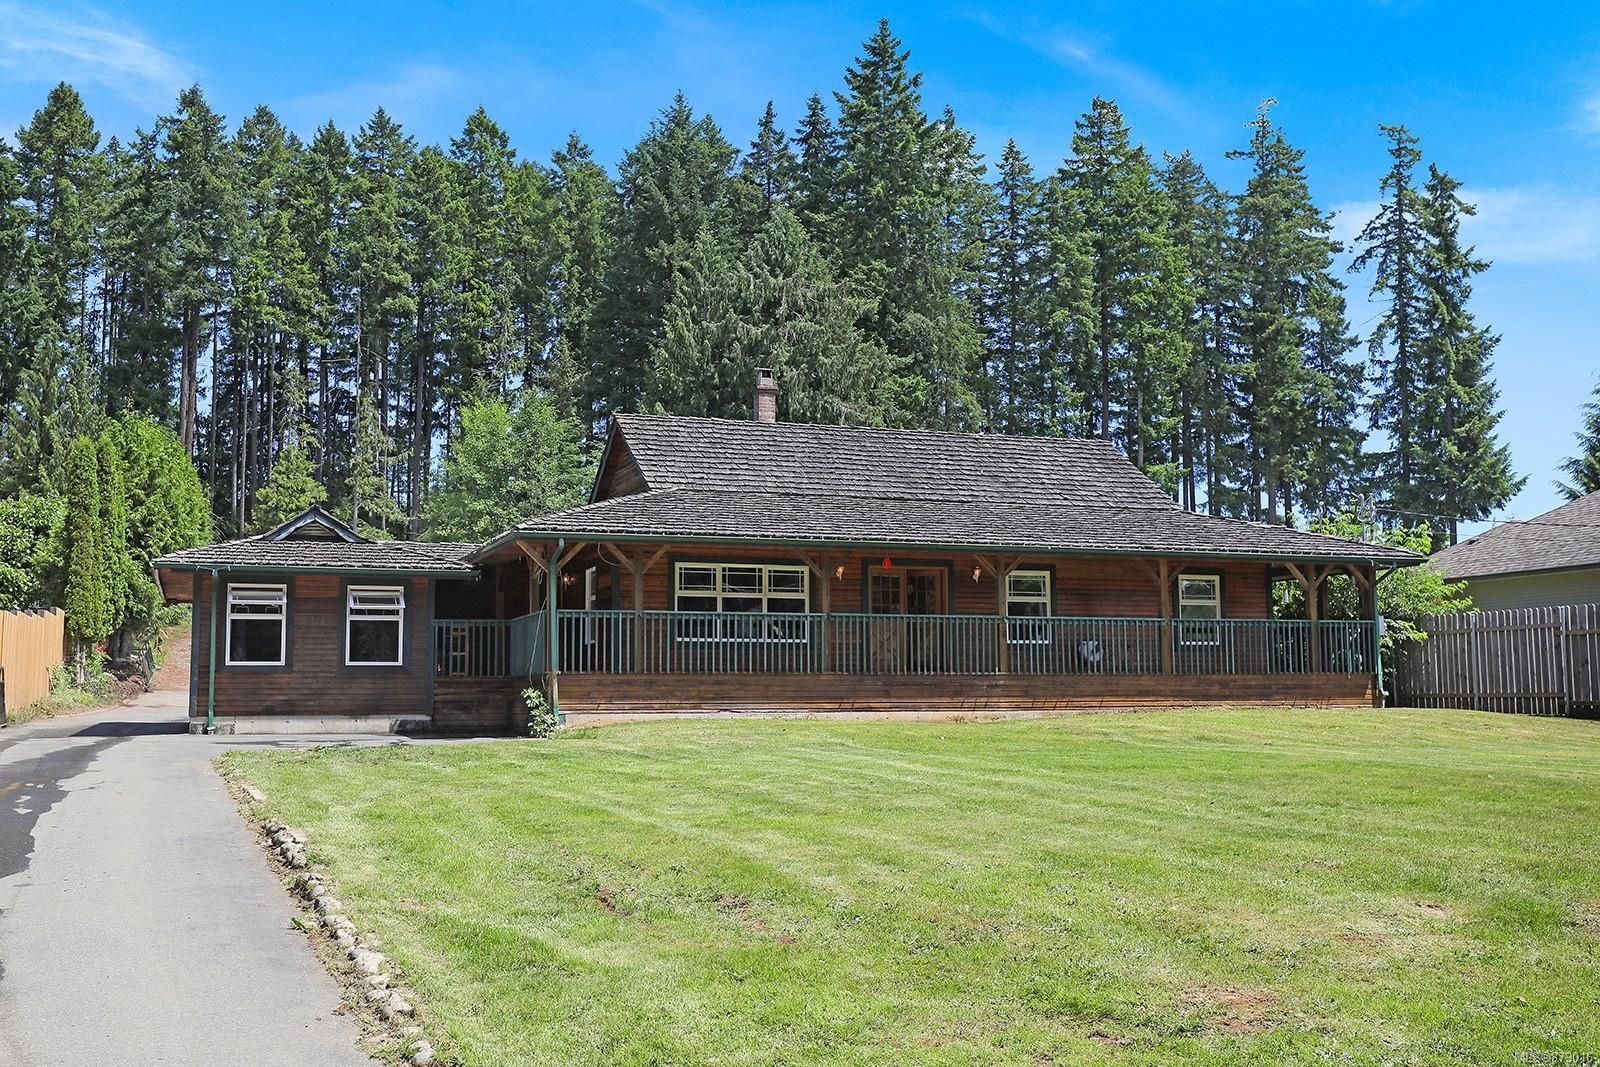 Main Photo: 3288 Union Rd in : CV Cumberland House for sale (Comox Valley)  : MLS®# 879016